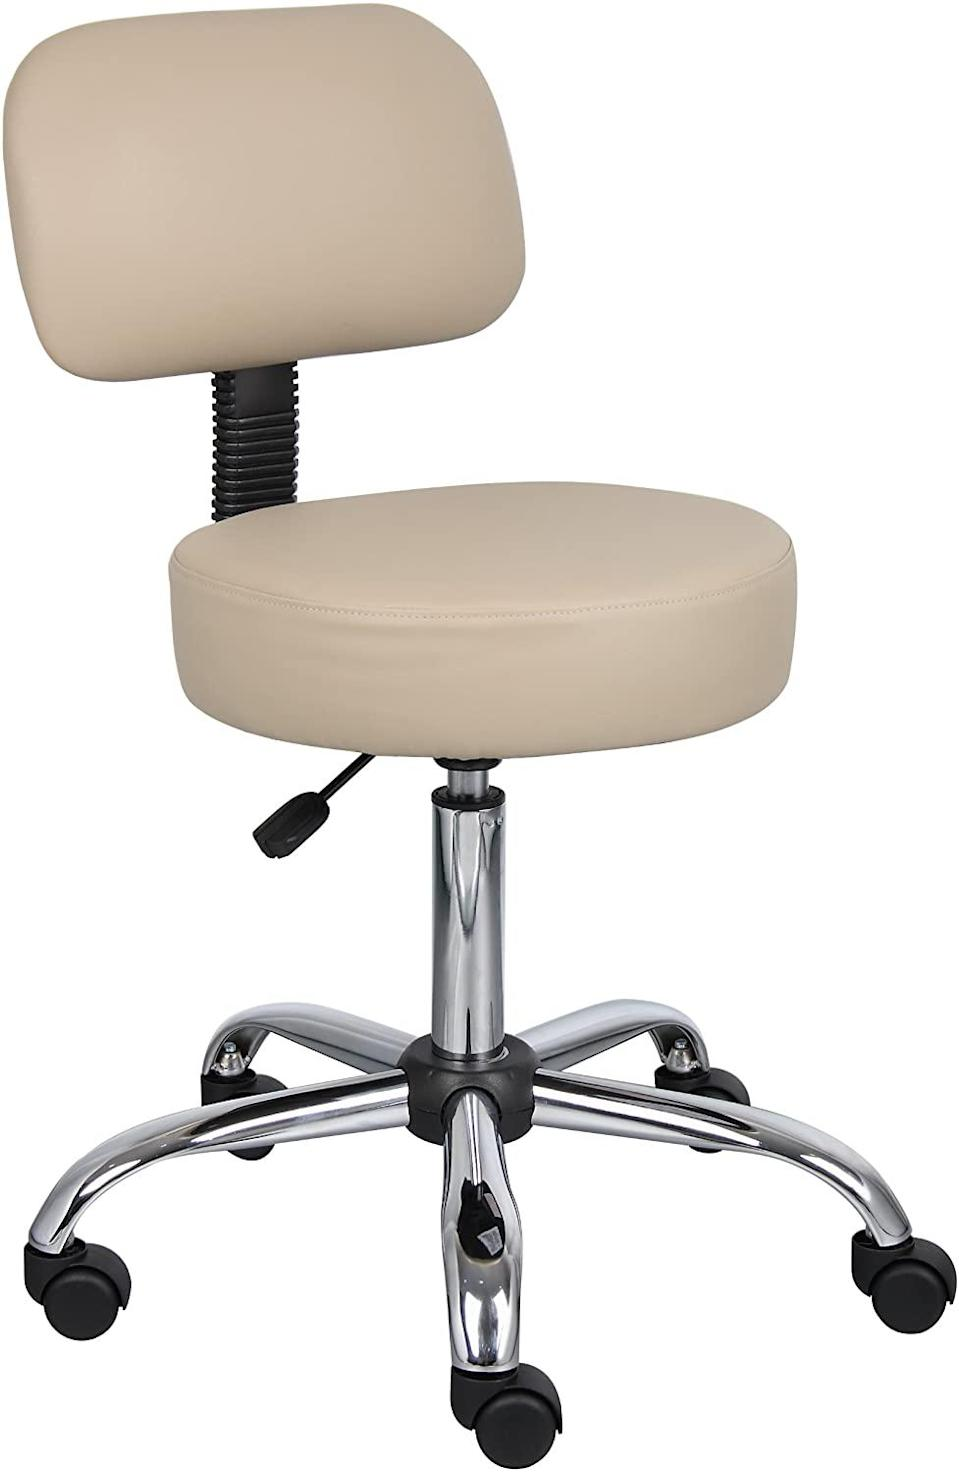 "<h2>Boss Office Products Be Well Medical Spa Stool With Back</h2> <br><strong>Best For: Spine Alignment</strong><br>For firmer support that comes tattoo-artist approved, this stool-style wheely chair is your WFH savior — its upright design mimics the natural shape of your spine for increased comfort. <br><br><strong>The Hype:</strong> 4.5 out of 5 stars and 2,924 reviews on <a href=""https://amzn.to/35lYvnb"" rel=""nofollow noopener"" target=""_blank"" data-ylk=""slk:Amazon"" class=""link rapid-noclick-resp"">Amazon</a><br><br><strong>Comfy Butts Say: </strong>""I'm a tattoo artist, so I spend all day sitting in these types of chairs. I was looking for something fairly inexpensive but comfortable and sturdy. Most tattoo chairs run from $150-300 dollars — bought this one for $55 bucks and it's perfect for what I do. Comfortable large seat. Nice back support. Glad I found this on here. Good price.""<br><br><strong>Boss Office Products</strong> Be Well Medical Spa Stool with Back in Black, $, available at <a href=""https://amzn.to/2yfBg1O"" rel=""nofollow noopener"" target=""_blank"" data-ylk=""slk:Amazon"" class=""link rapid-noclick-resp"">Amazon</a><br><br><br><br><br><br>"